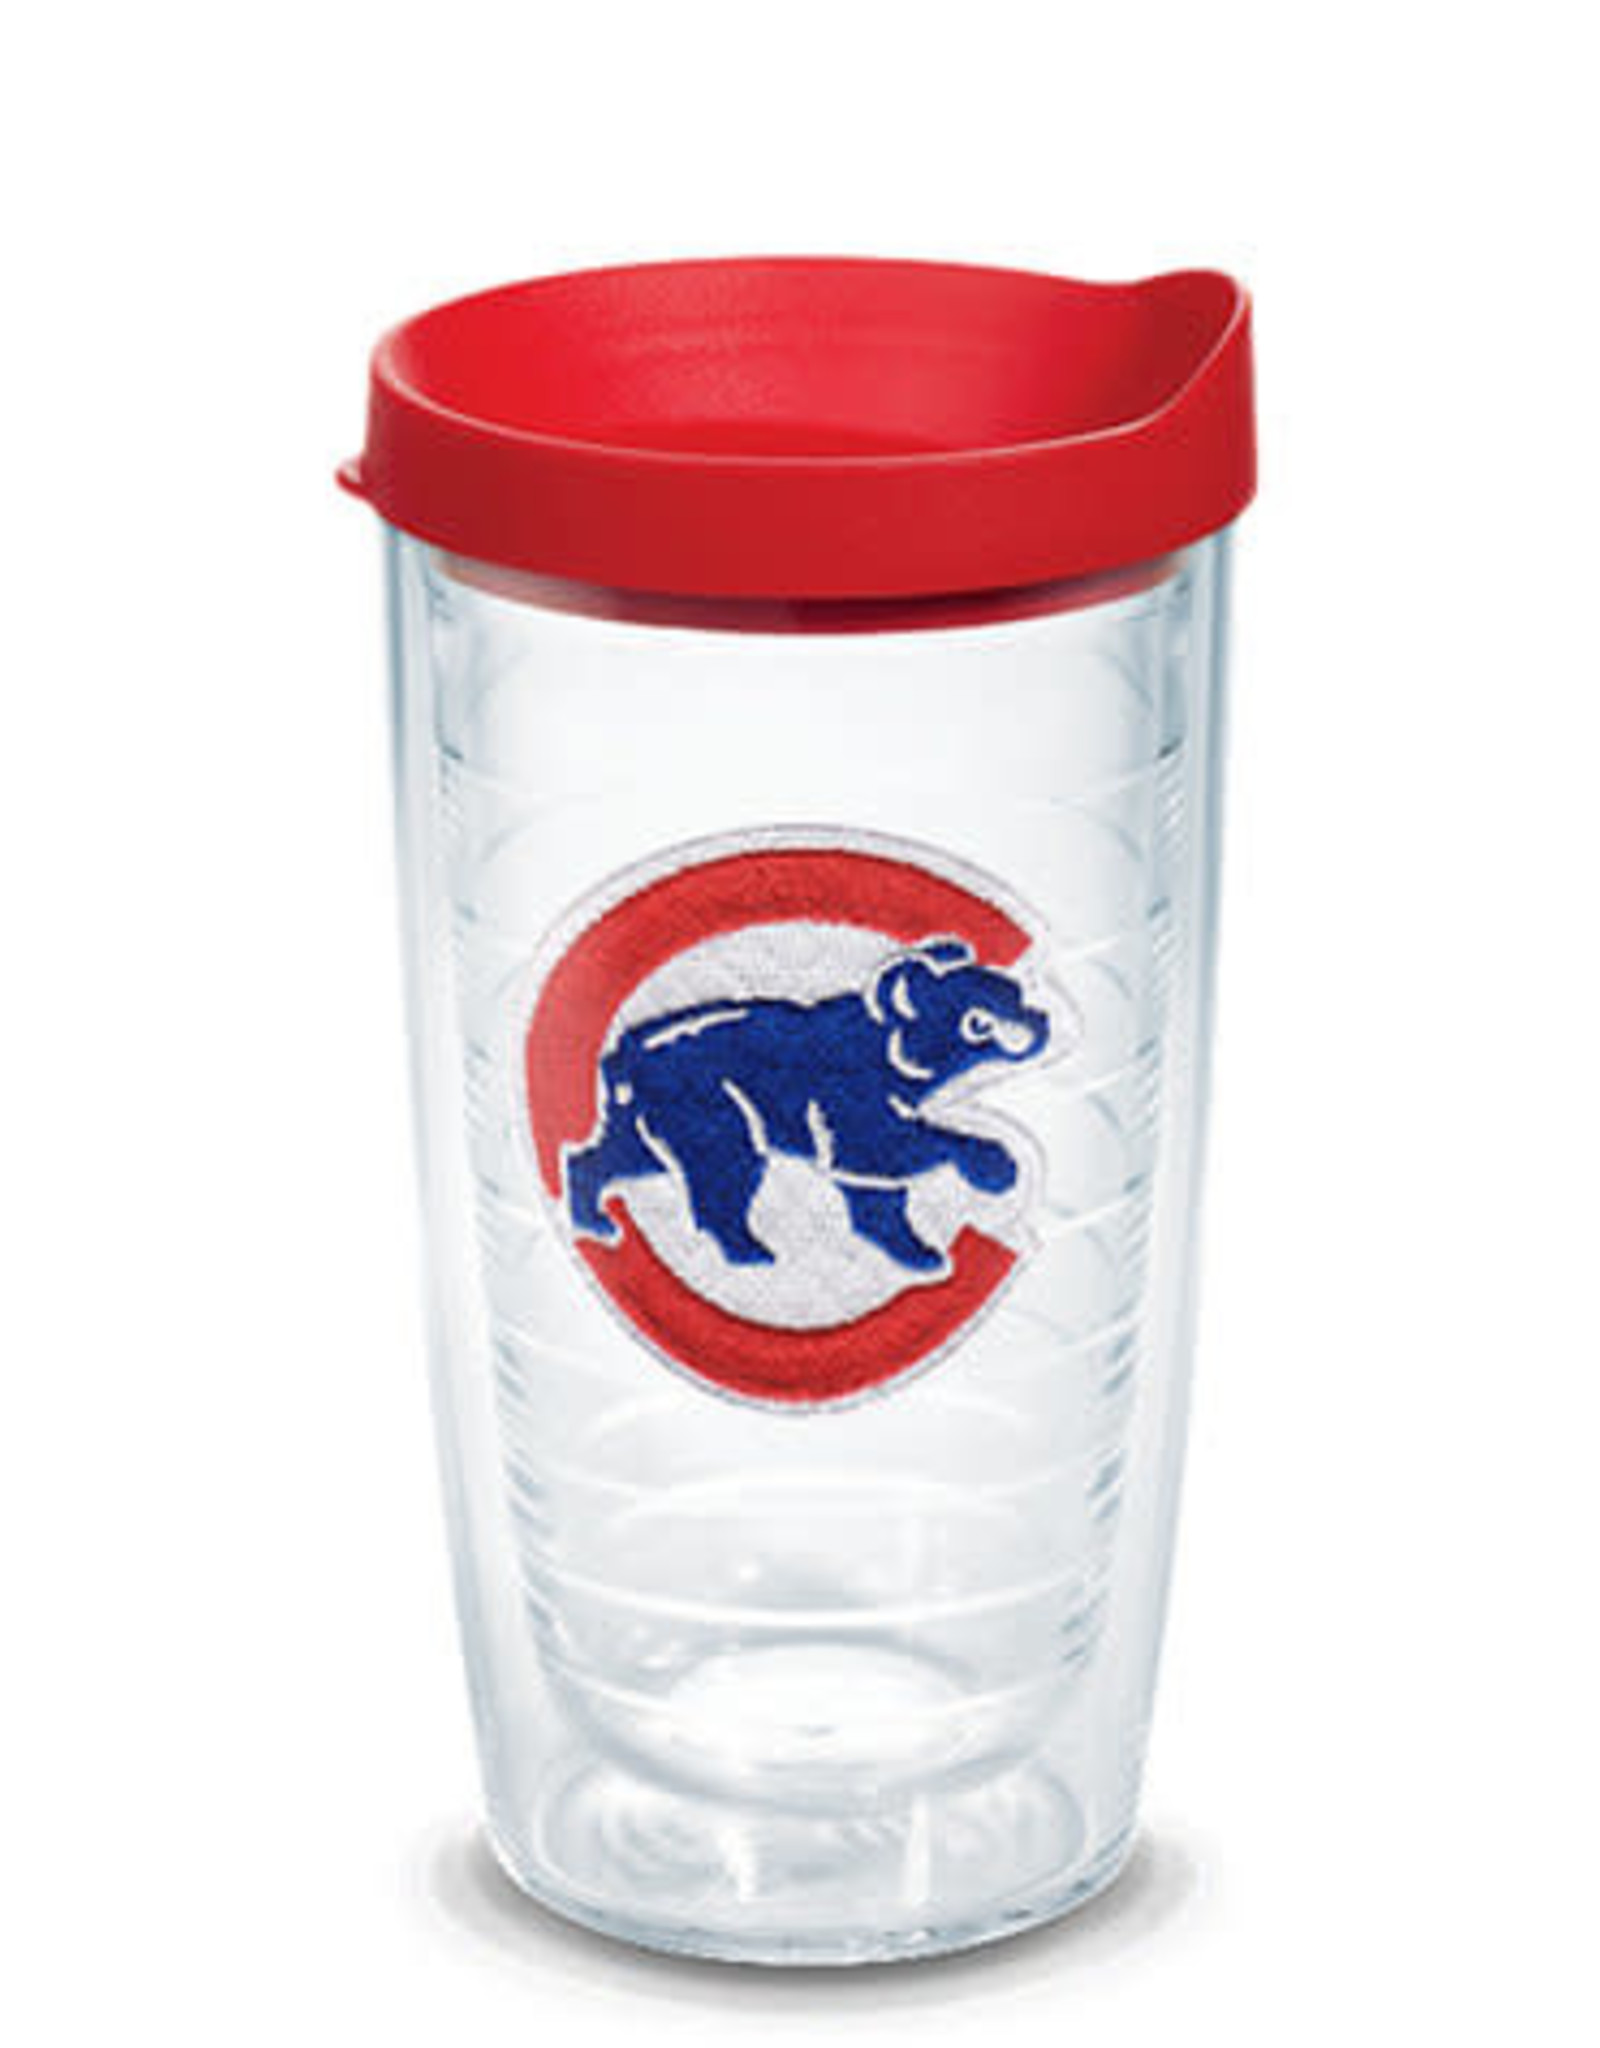 Tervis Tumbler 16oz/Lid Walking Cub